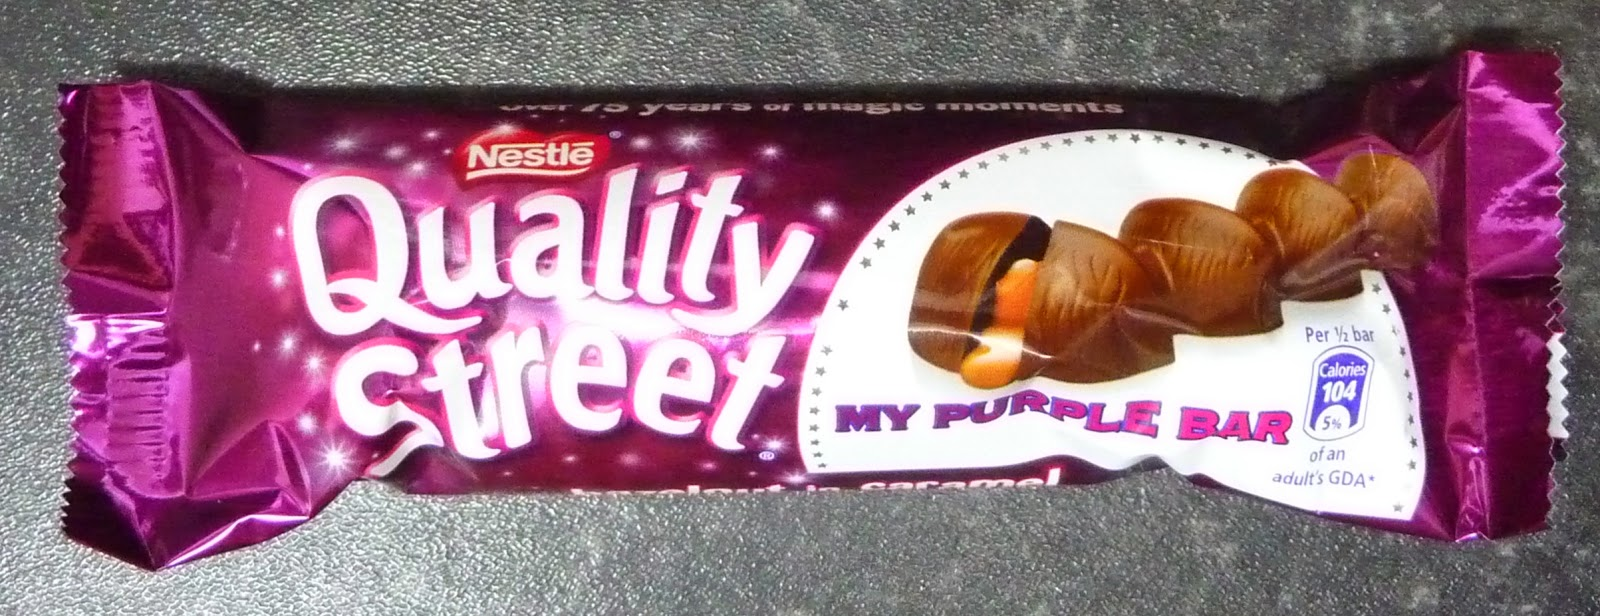 Something to look forward to: Nestlé Quality Street: My purple bar